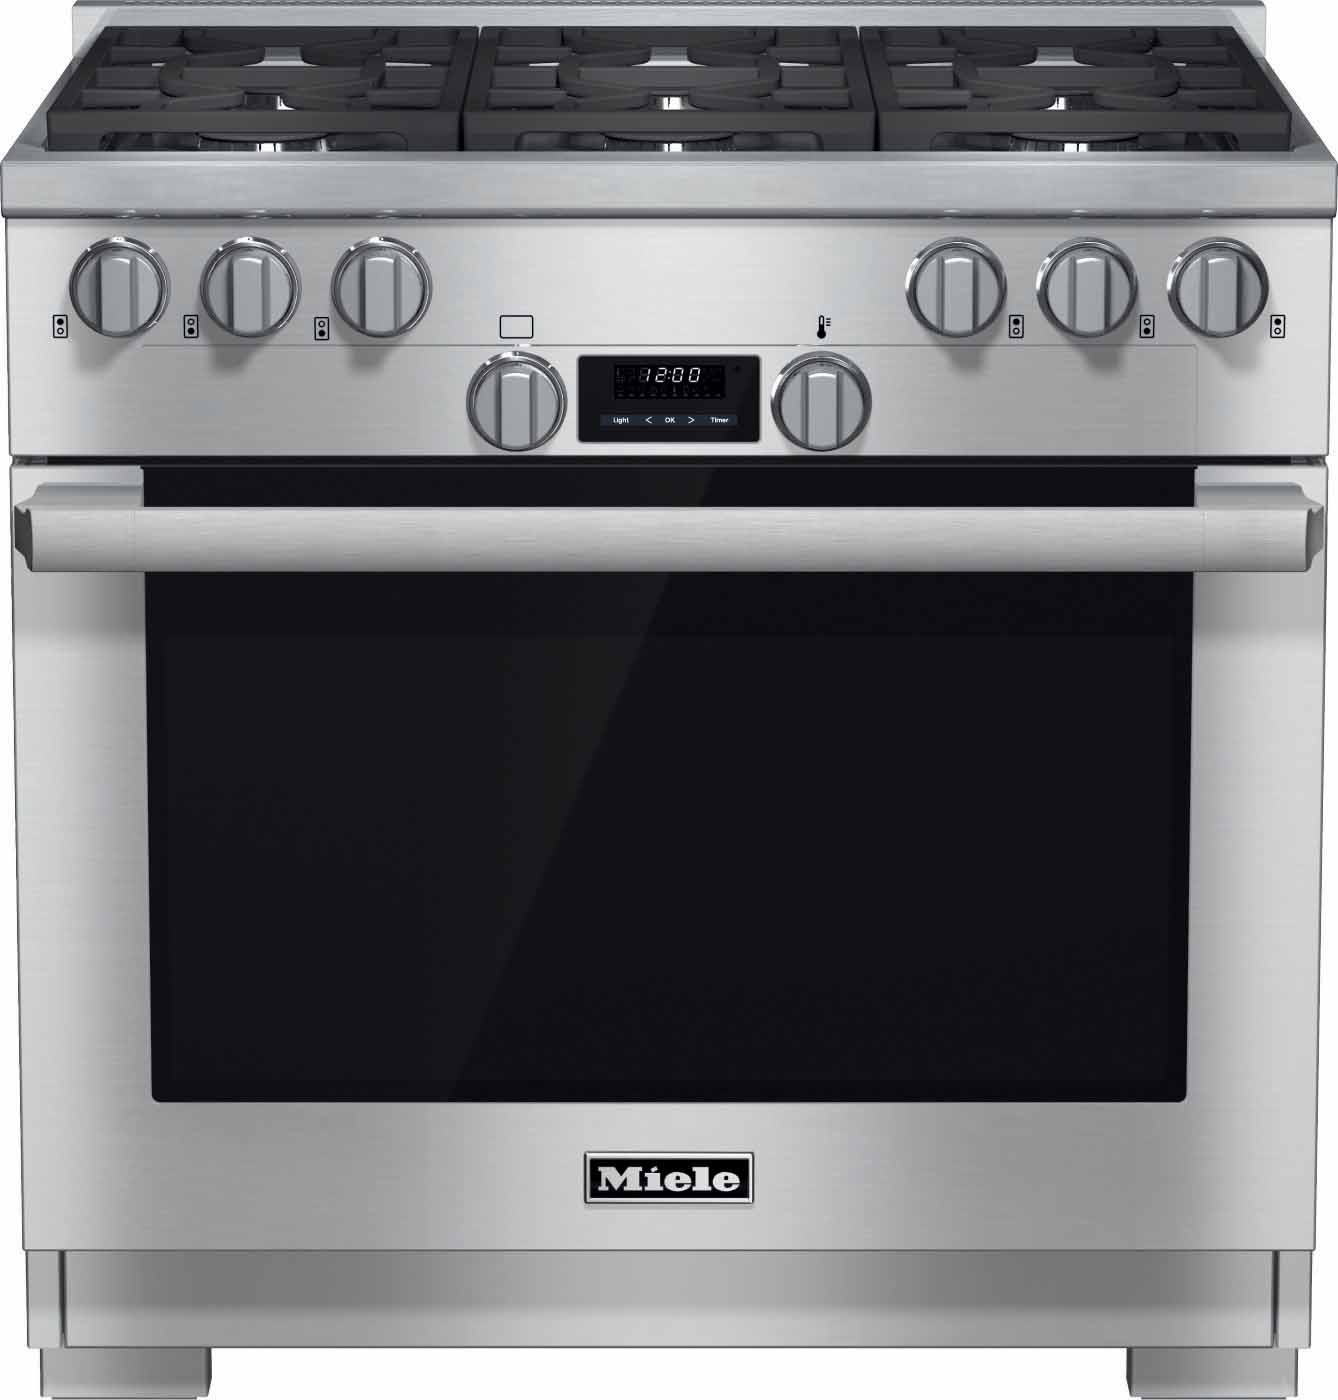 36 inch gas cooktop with downdraft - 36 Inch Gas Cooktop With Downdraft 36